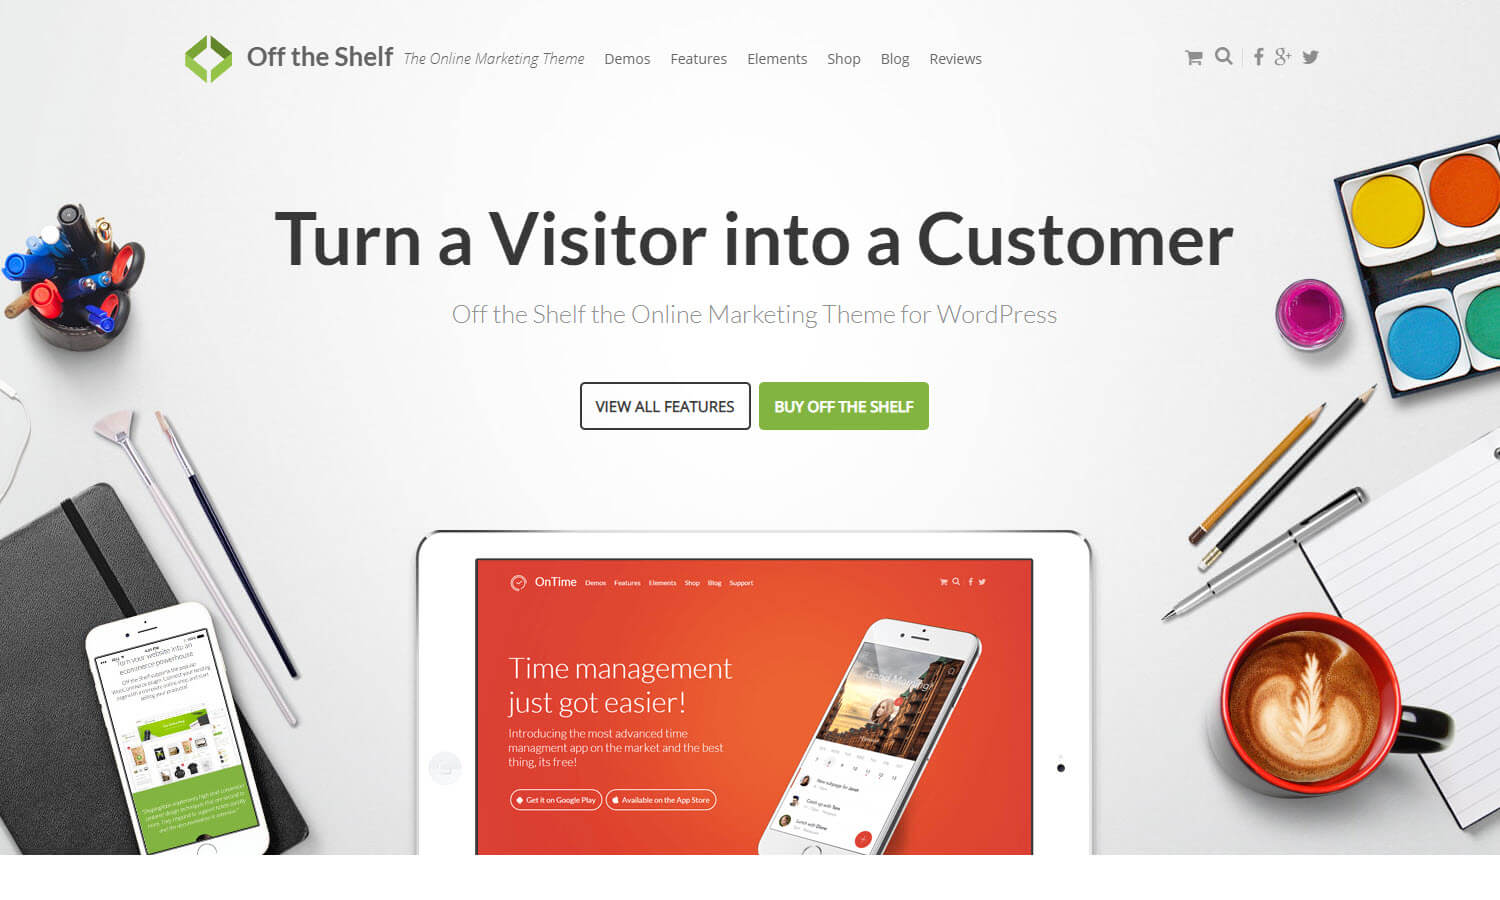 Off the Shelf screenshot